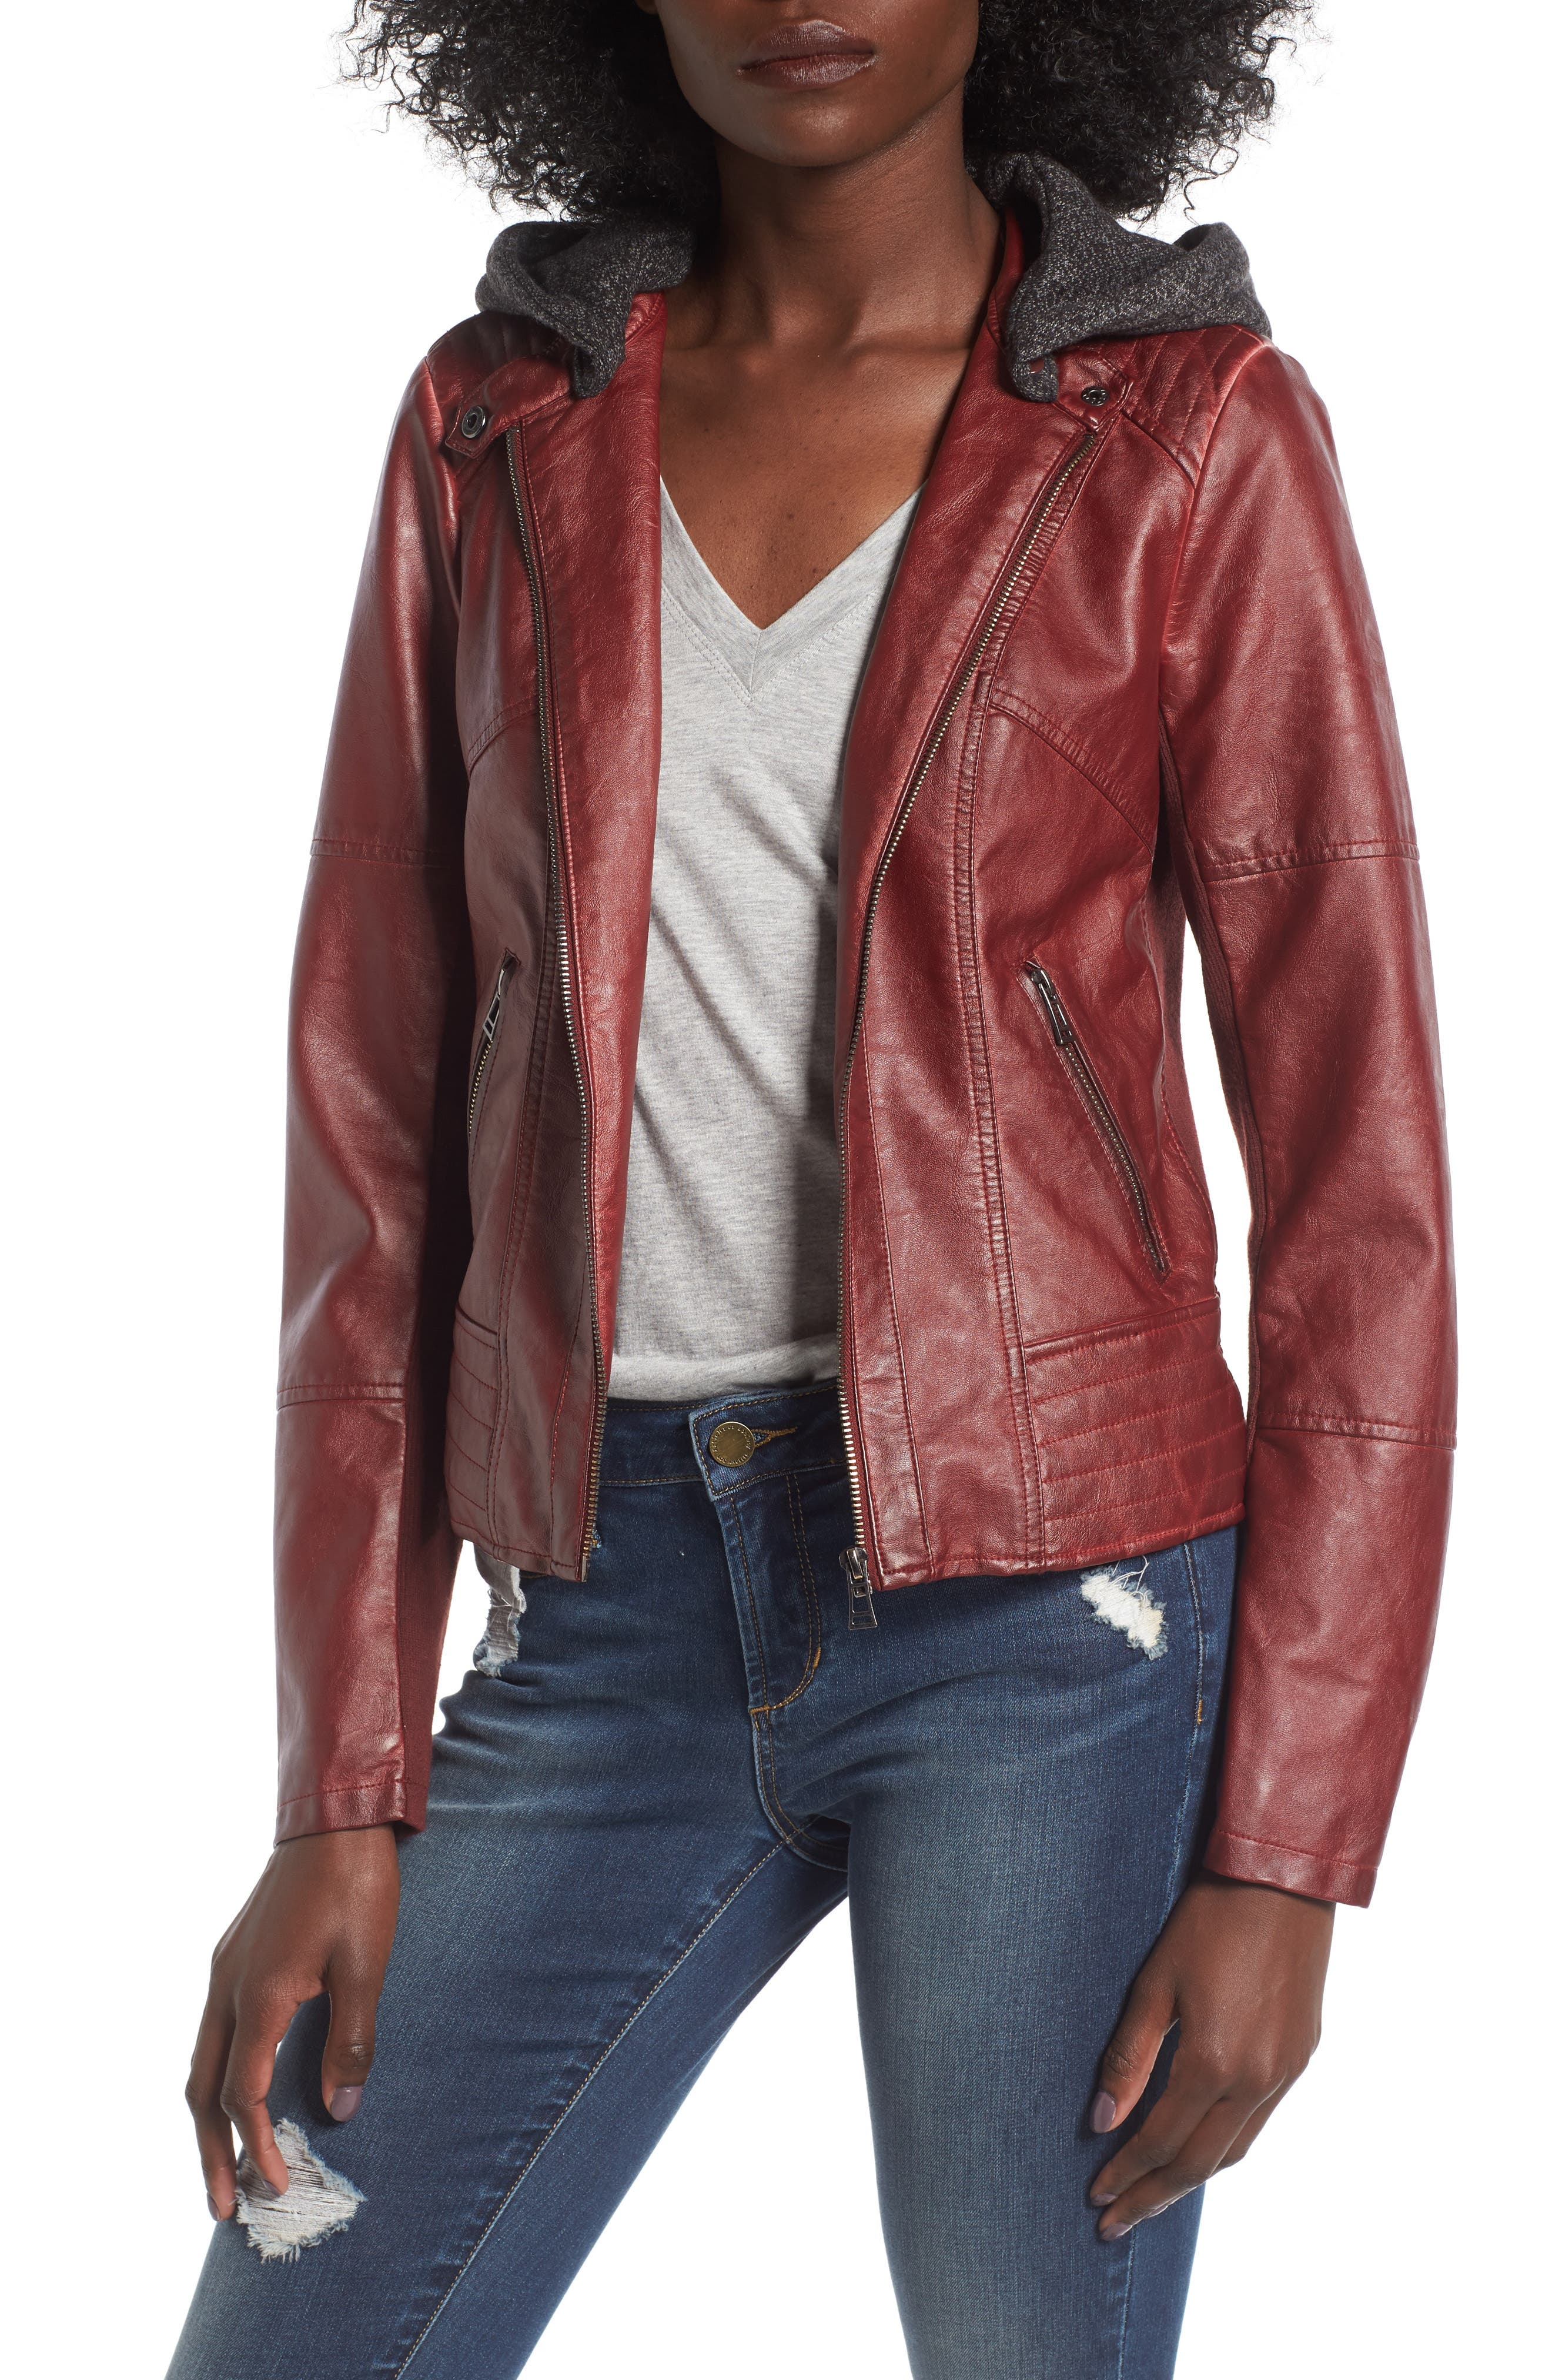 Alternate Image 1 Selected - SEBBY Faux Leather Jacket with Detachable Jersey Hood